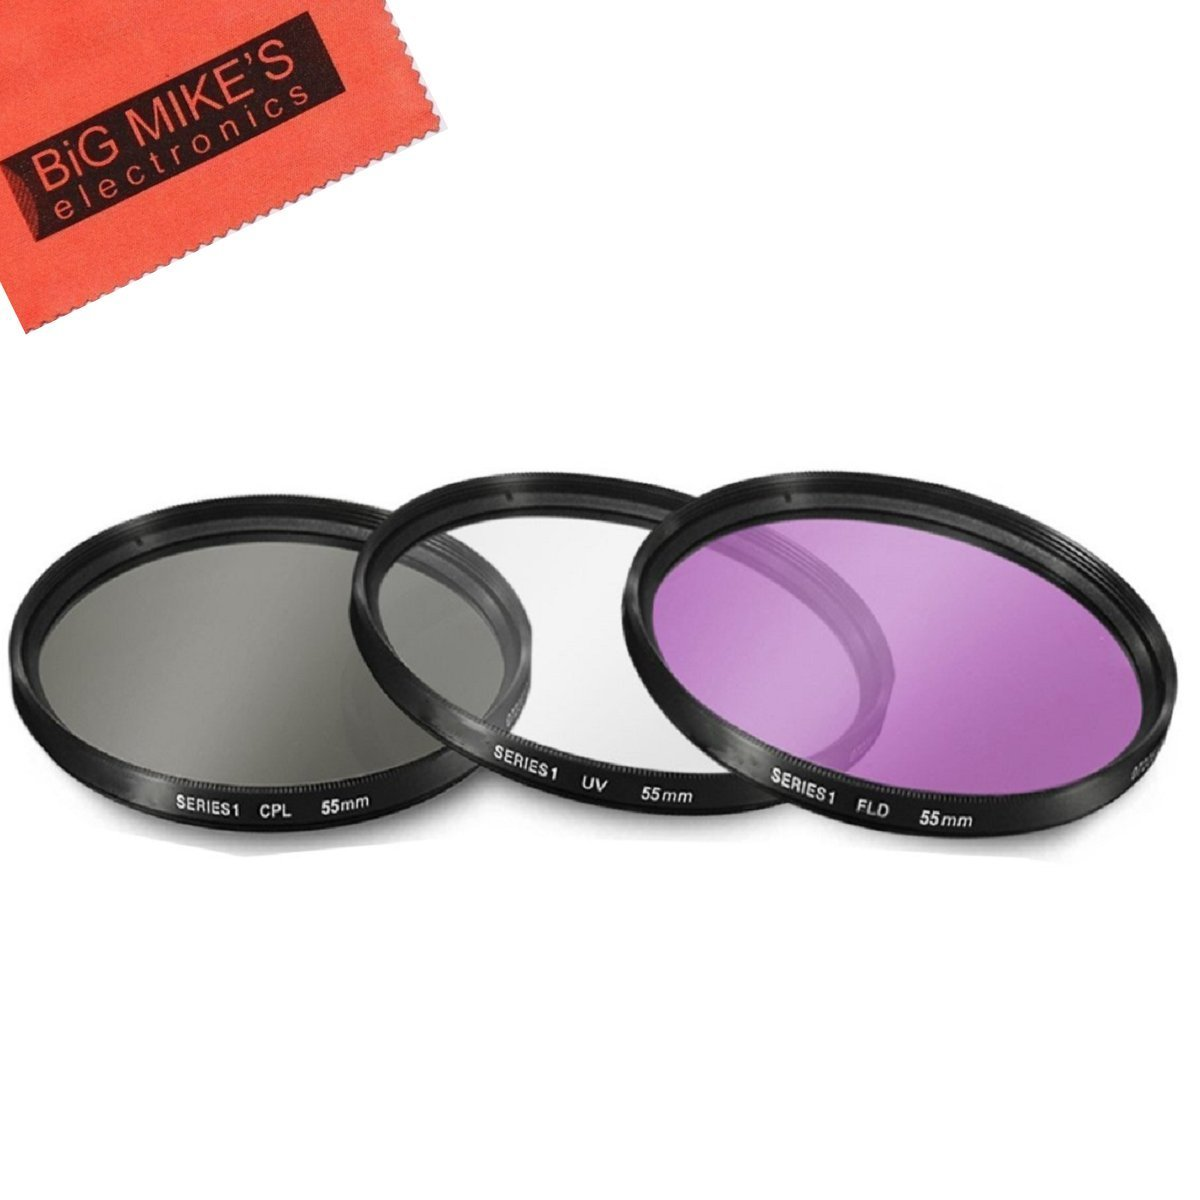 55mm Multi-Coated 3 Piece Filter Kit (UV-CPL-FLD) for Nikon Nikon D3400. D5600 with 18-55MM AF-P DX, DL24-500 f/2.8-5.6 Digital Camera + MicroFiber Cleaning Cloth by Big Mike's